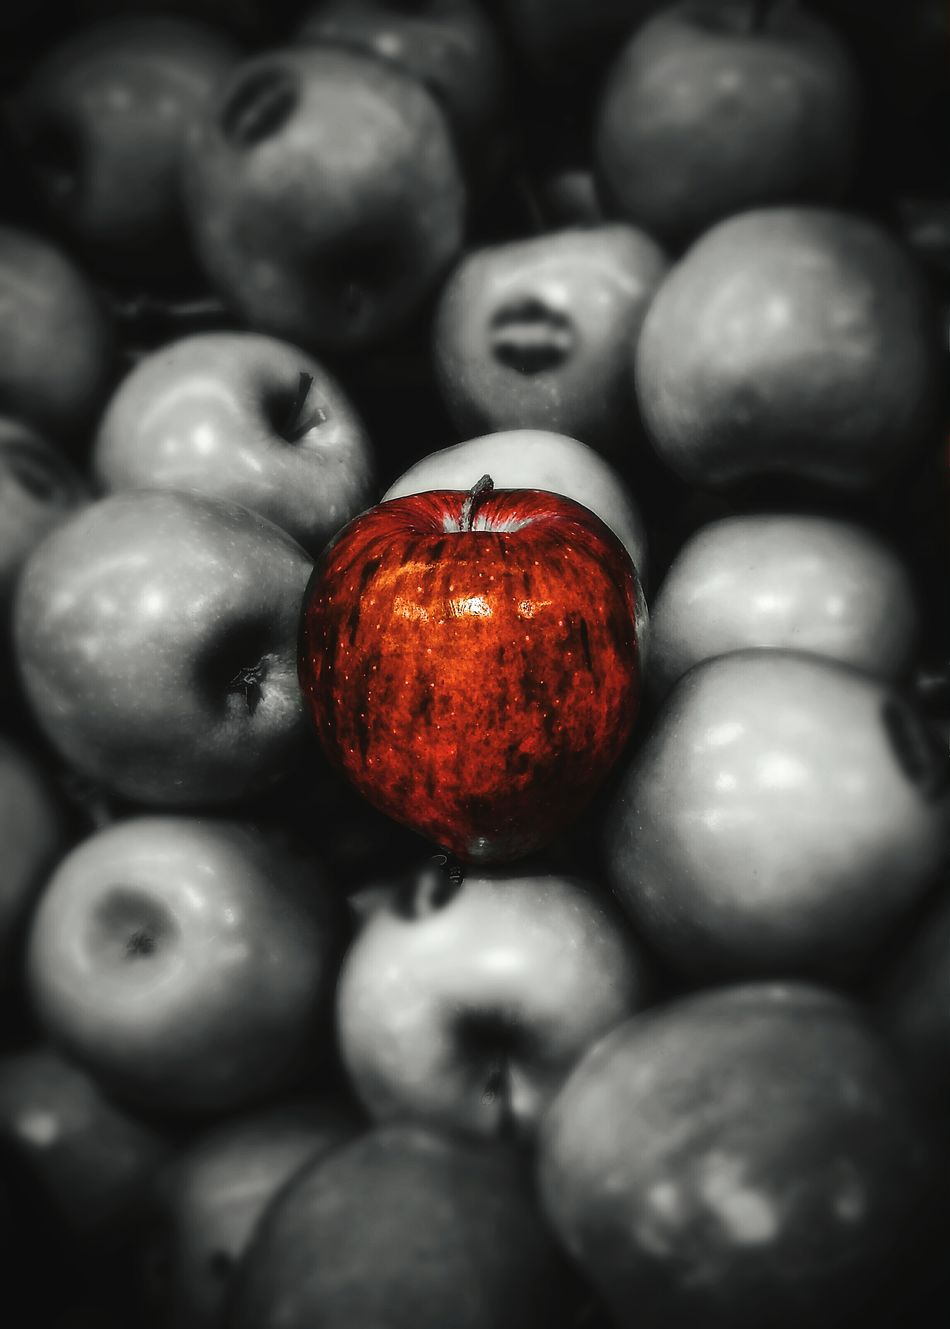 'Cursed Apple' Apple Redapple GREENAPPLES Red Snowwhite Cursed Disney Market Pile Splash Focused Smartphonephotography Photography Photographer EyeEm Gallery EyeEm Best Shots Colour Of Life